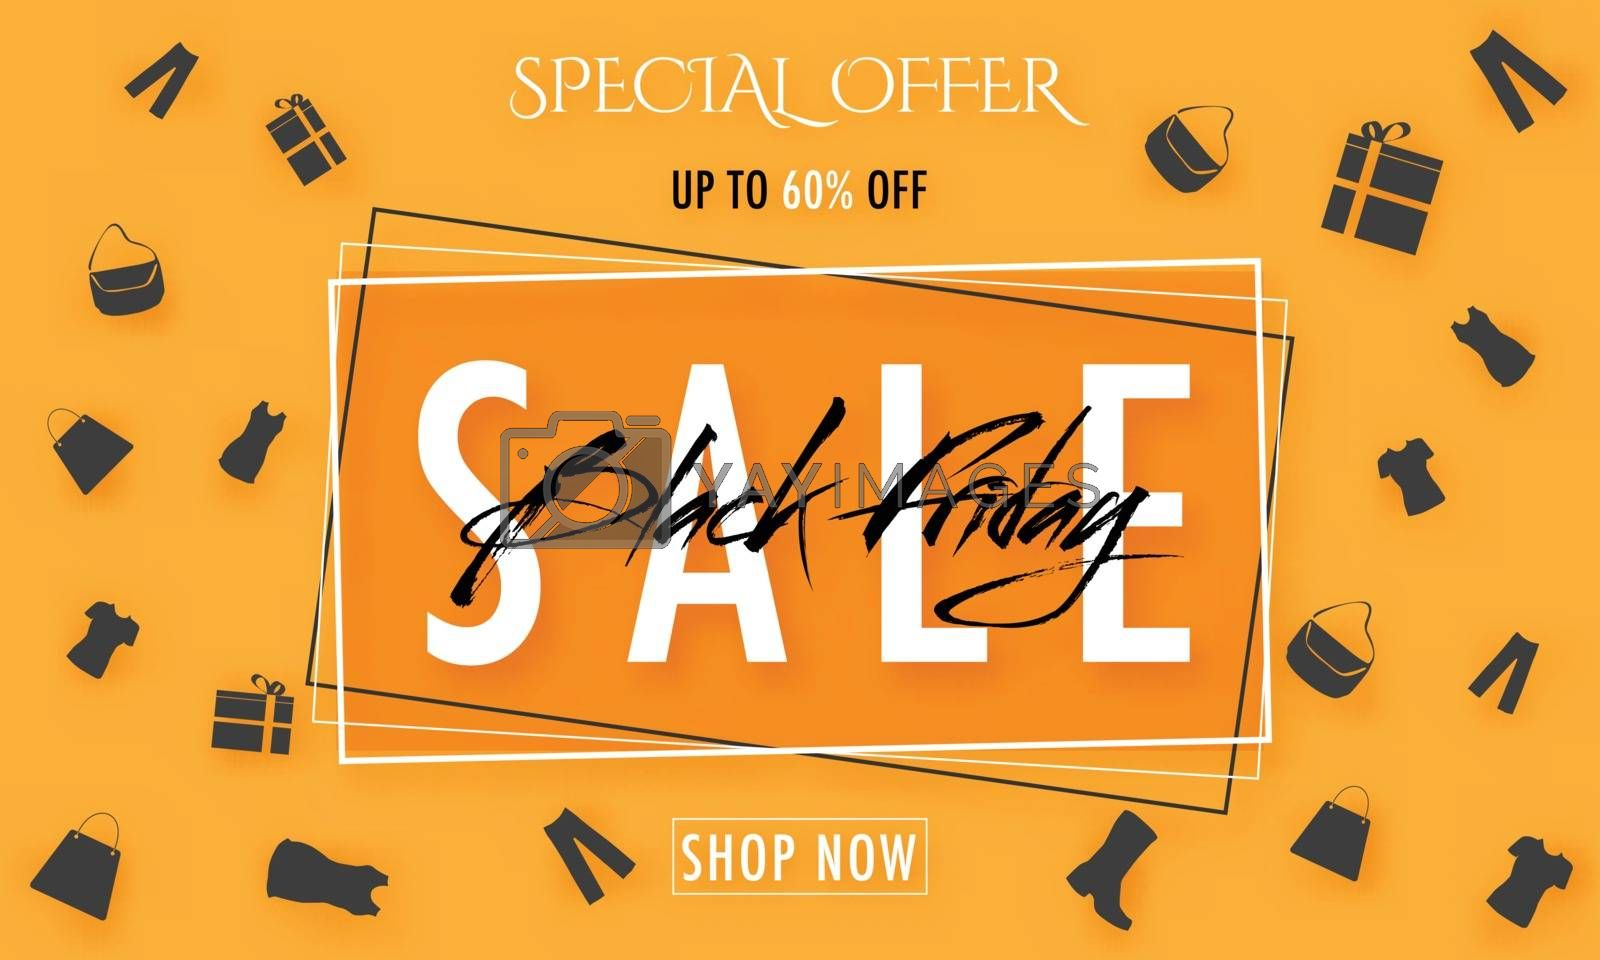 UpTo 60% discount offer for Black Friday Sale banner design for advertising concept.